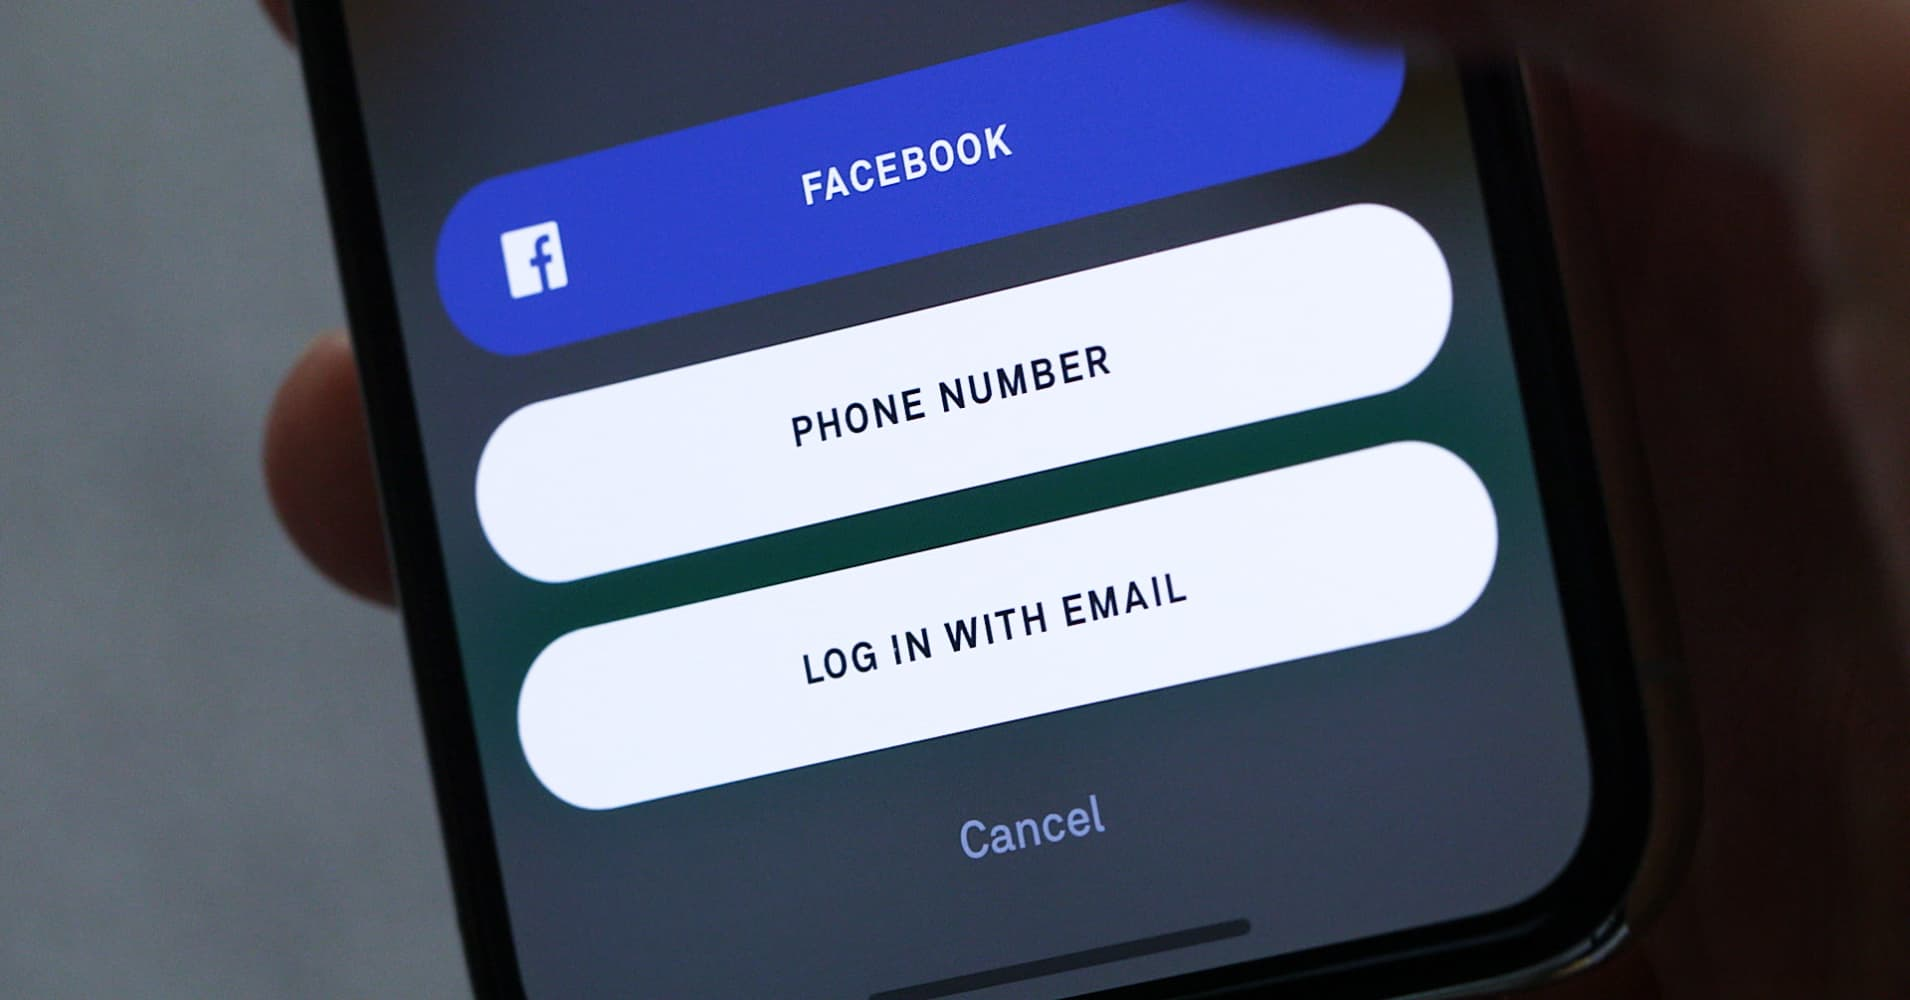 Here's how to see which apps have access to your Facebook data — and cut them off